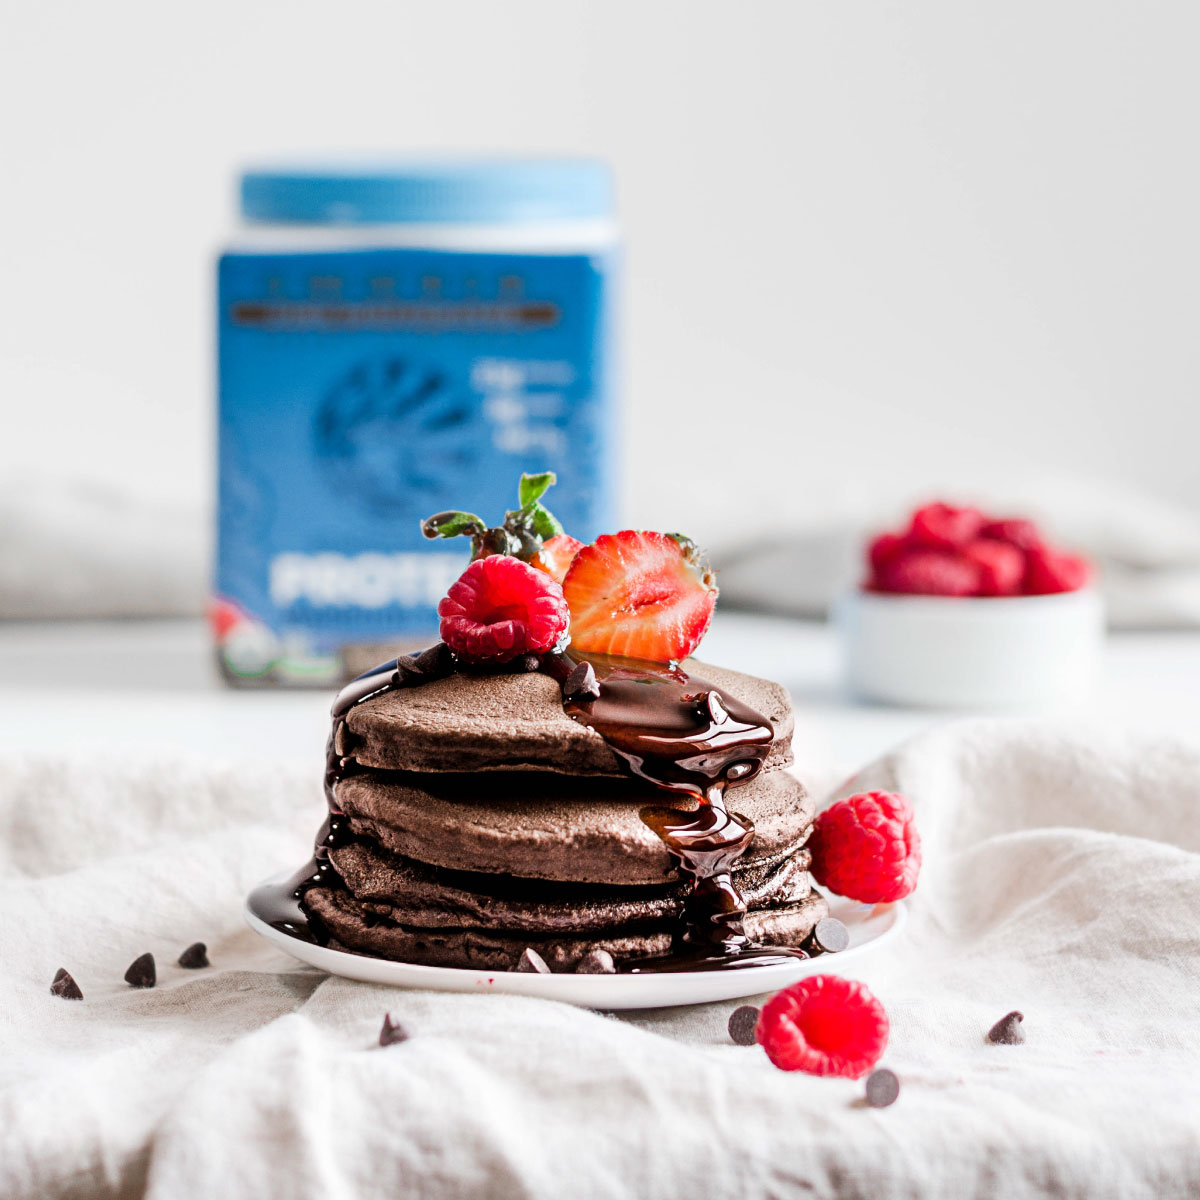 CHOCOLATE OAT PANCAKES